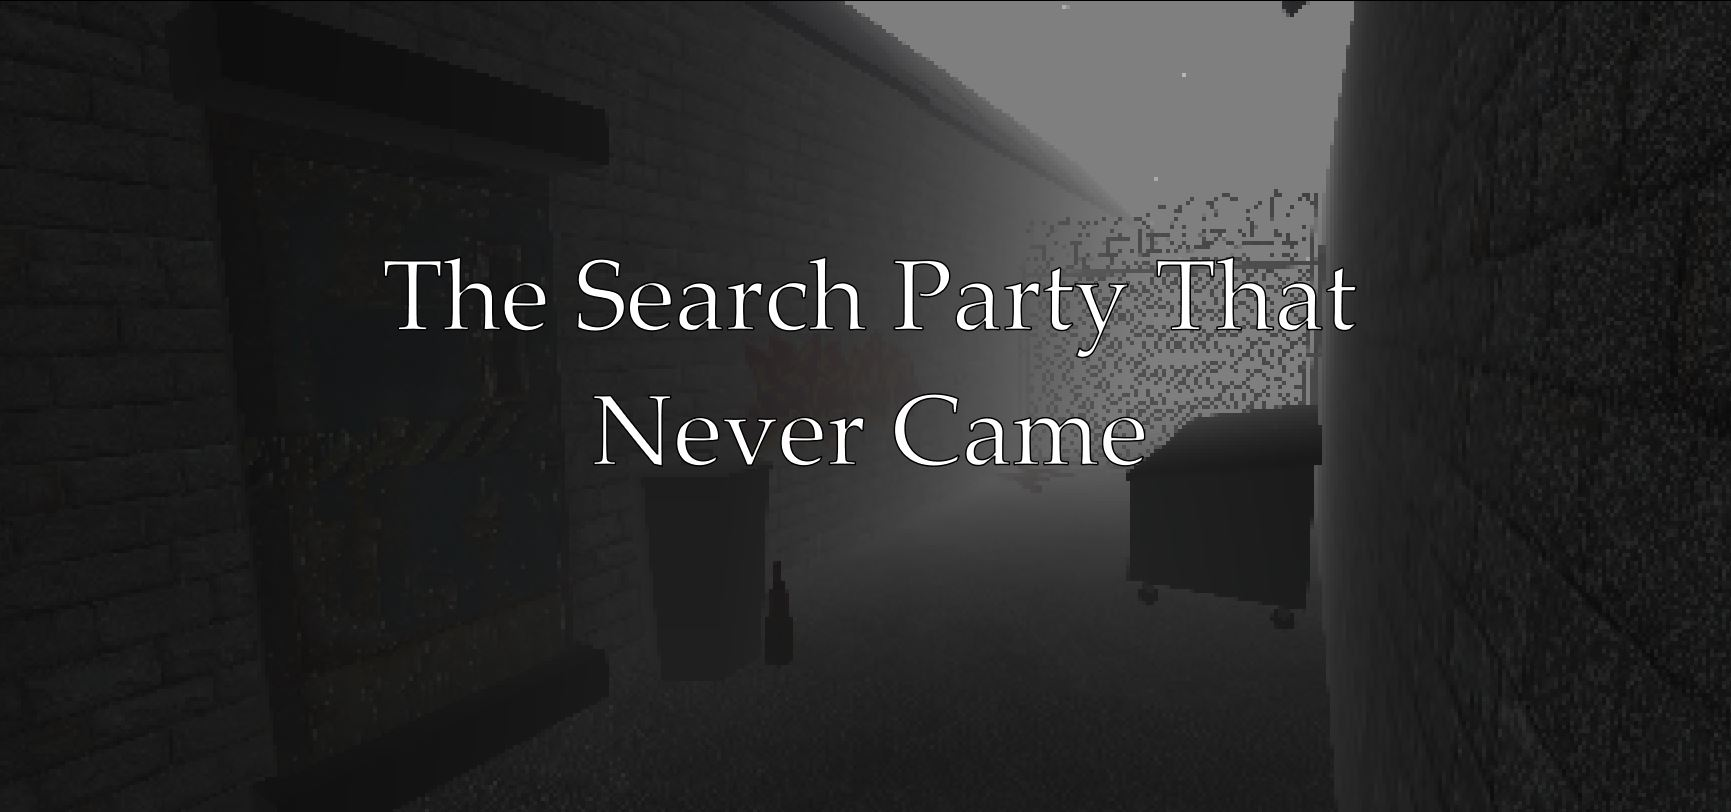 The Search Party That Never Came